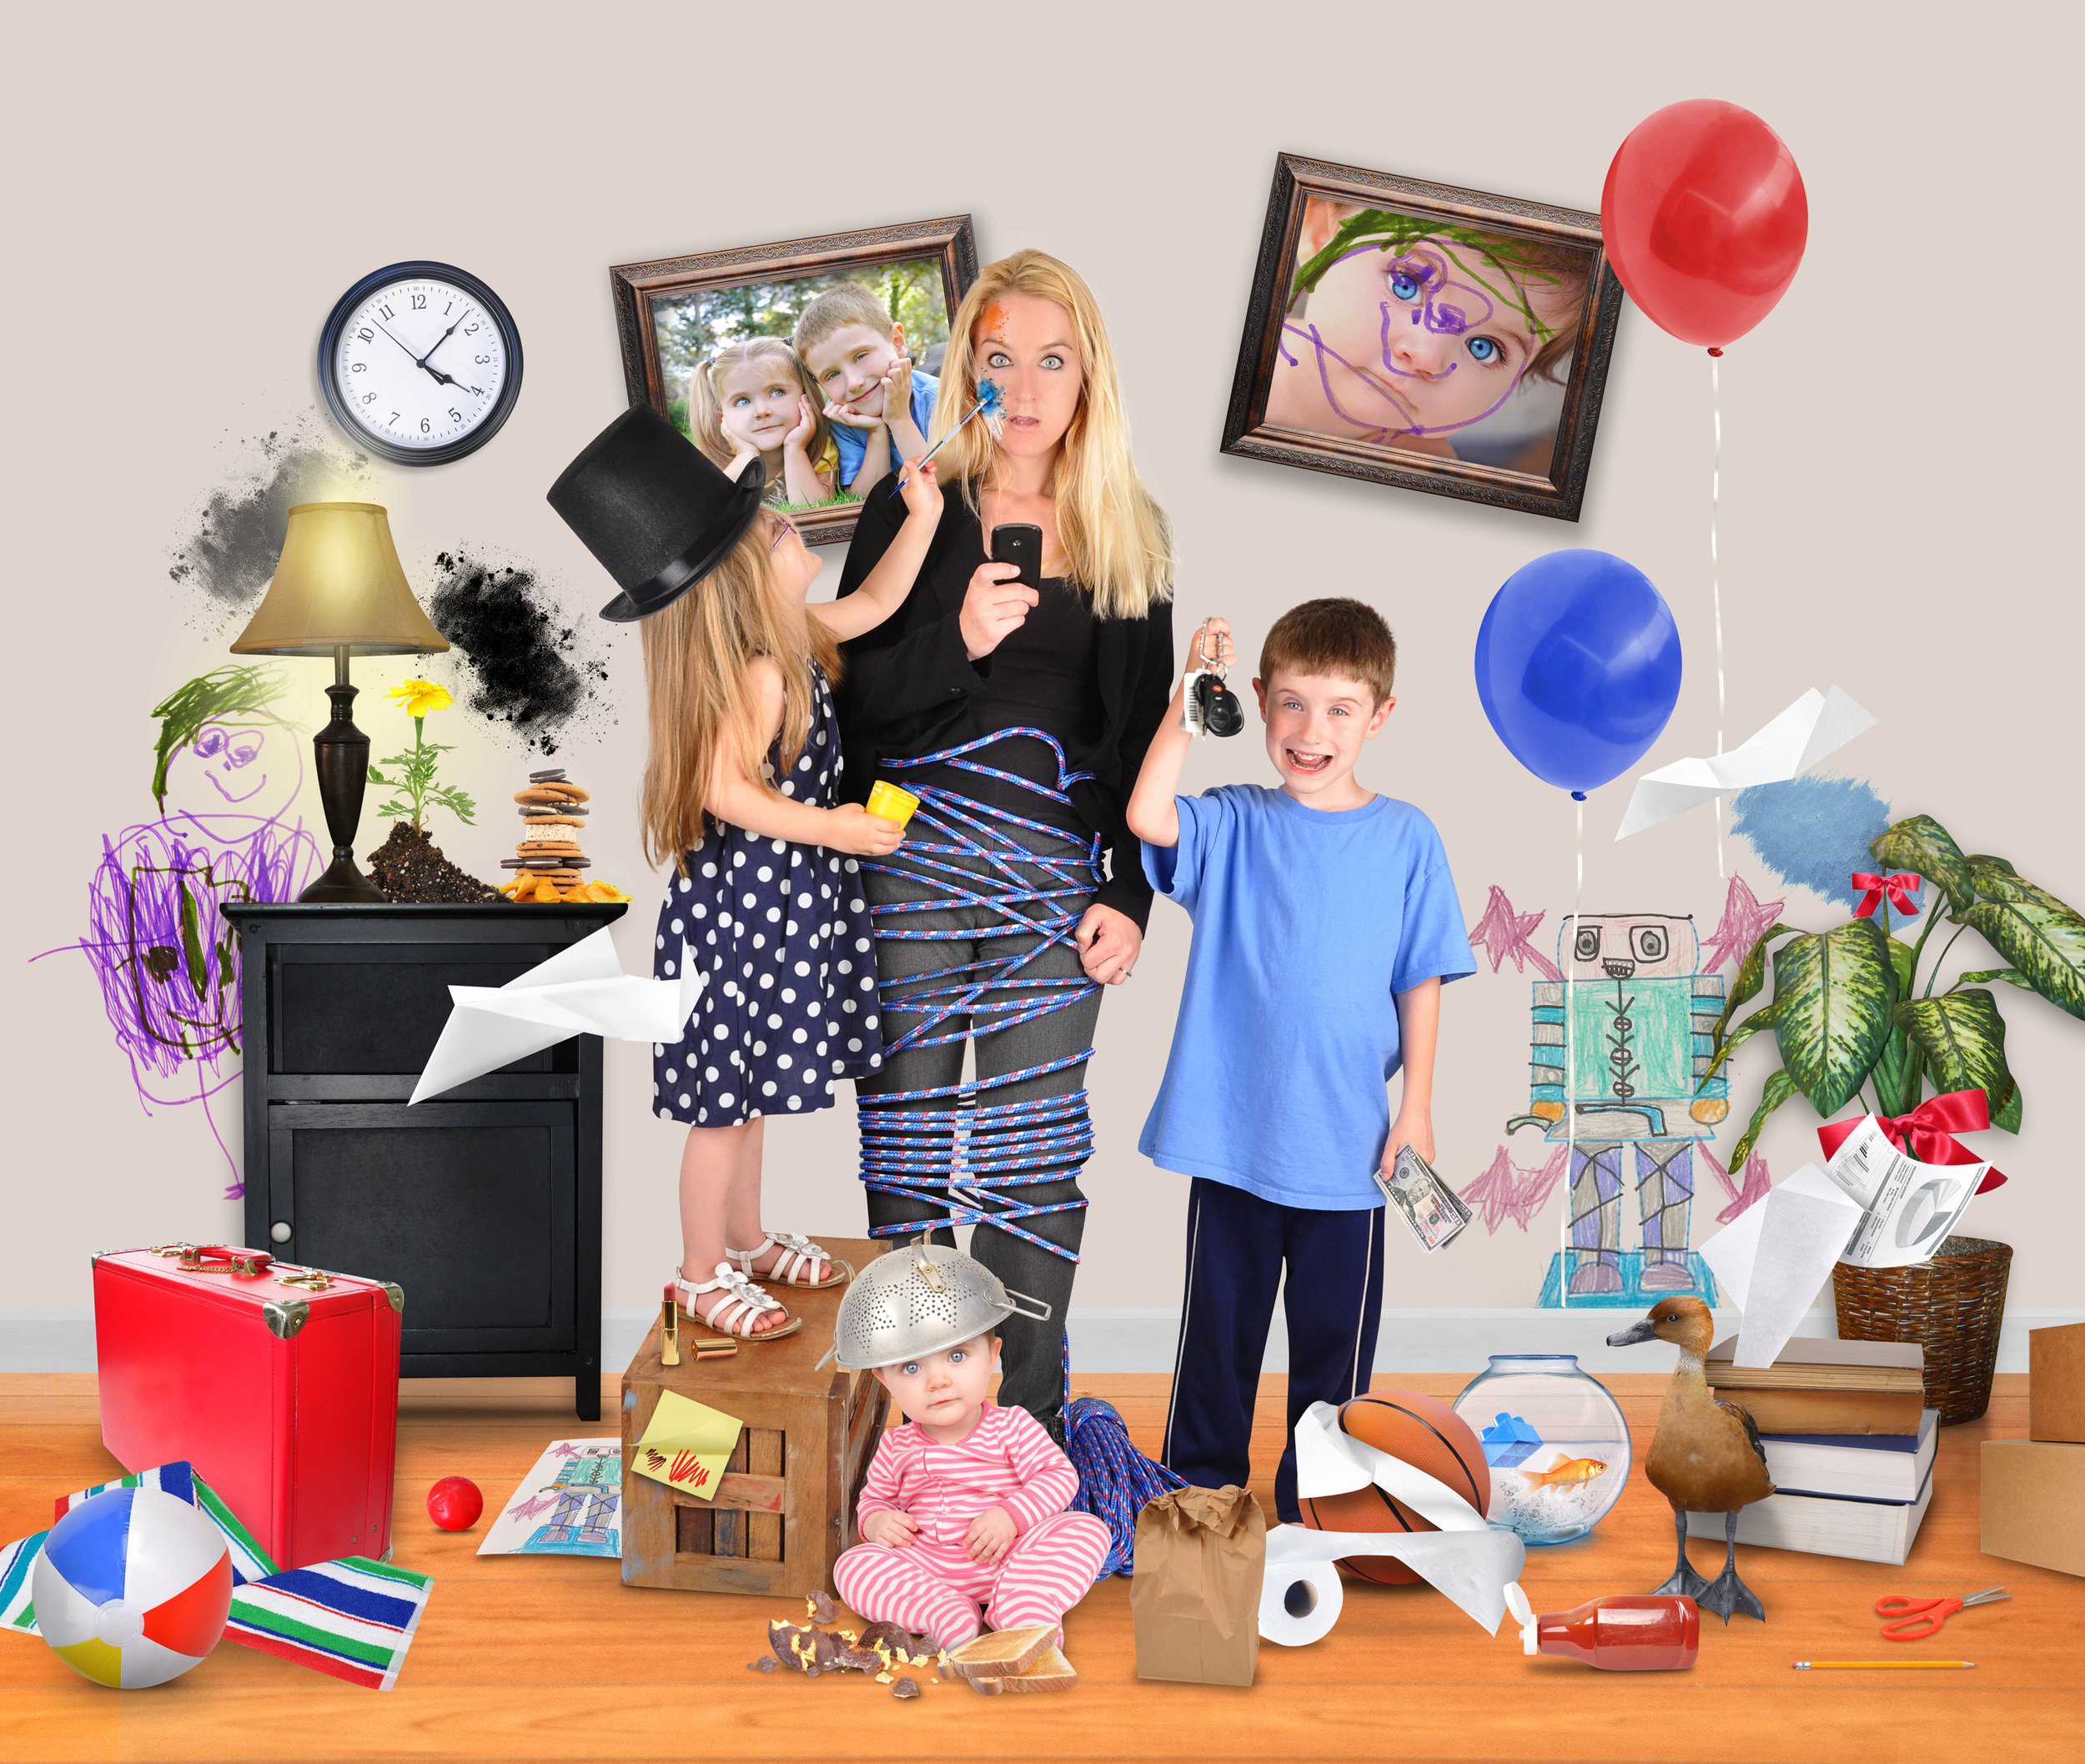 bigstock-Stressed-Mother-With-Wild-Chil-68630782.jpg